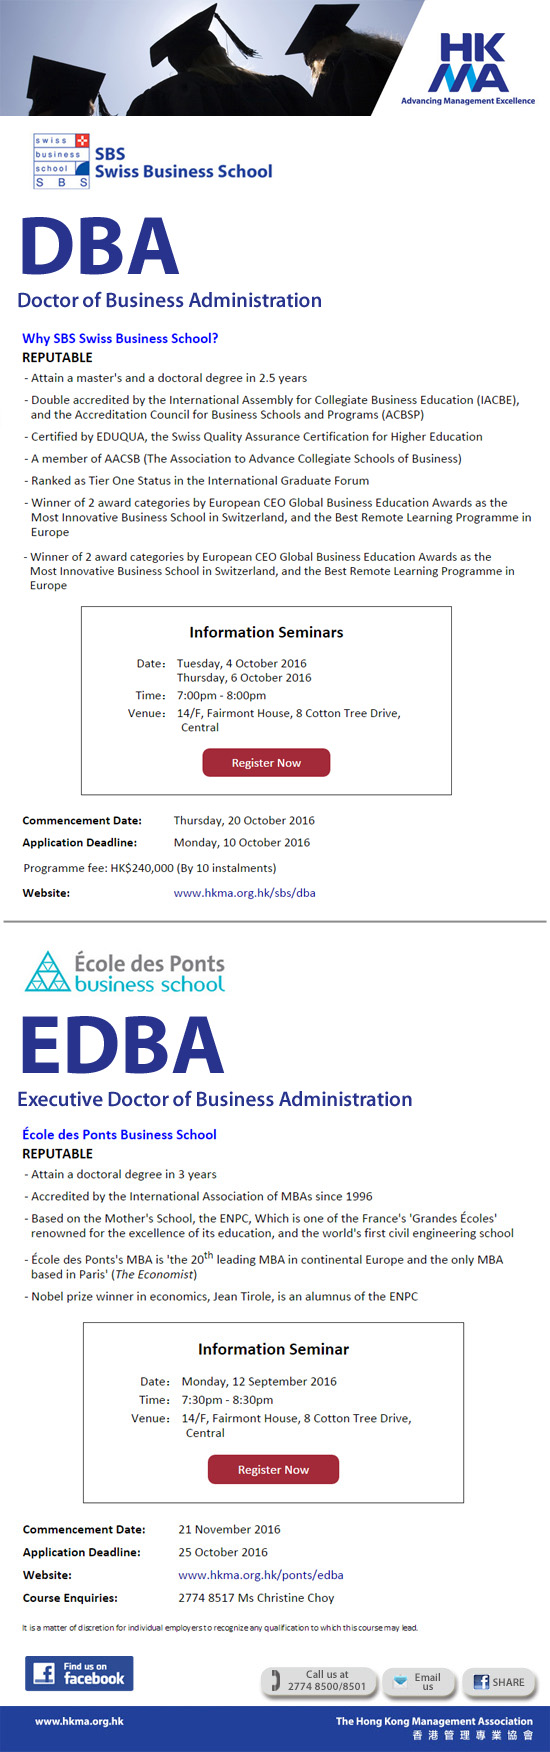 Information Seminars for DBA & EDBA